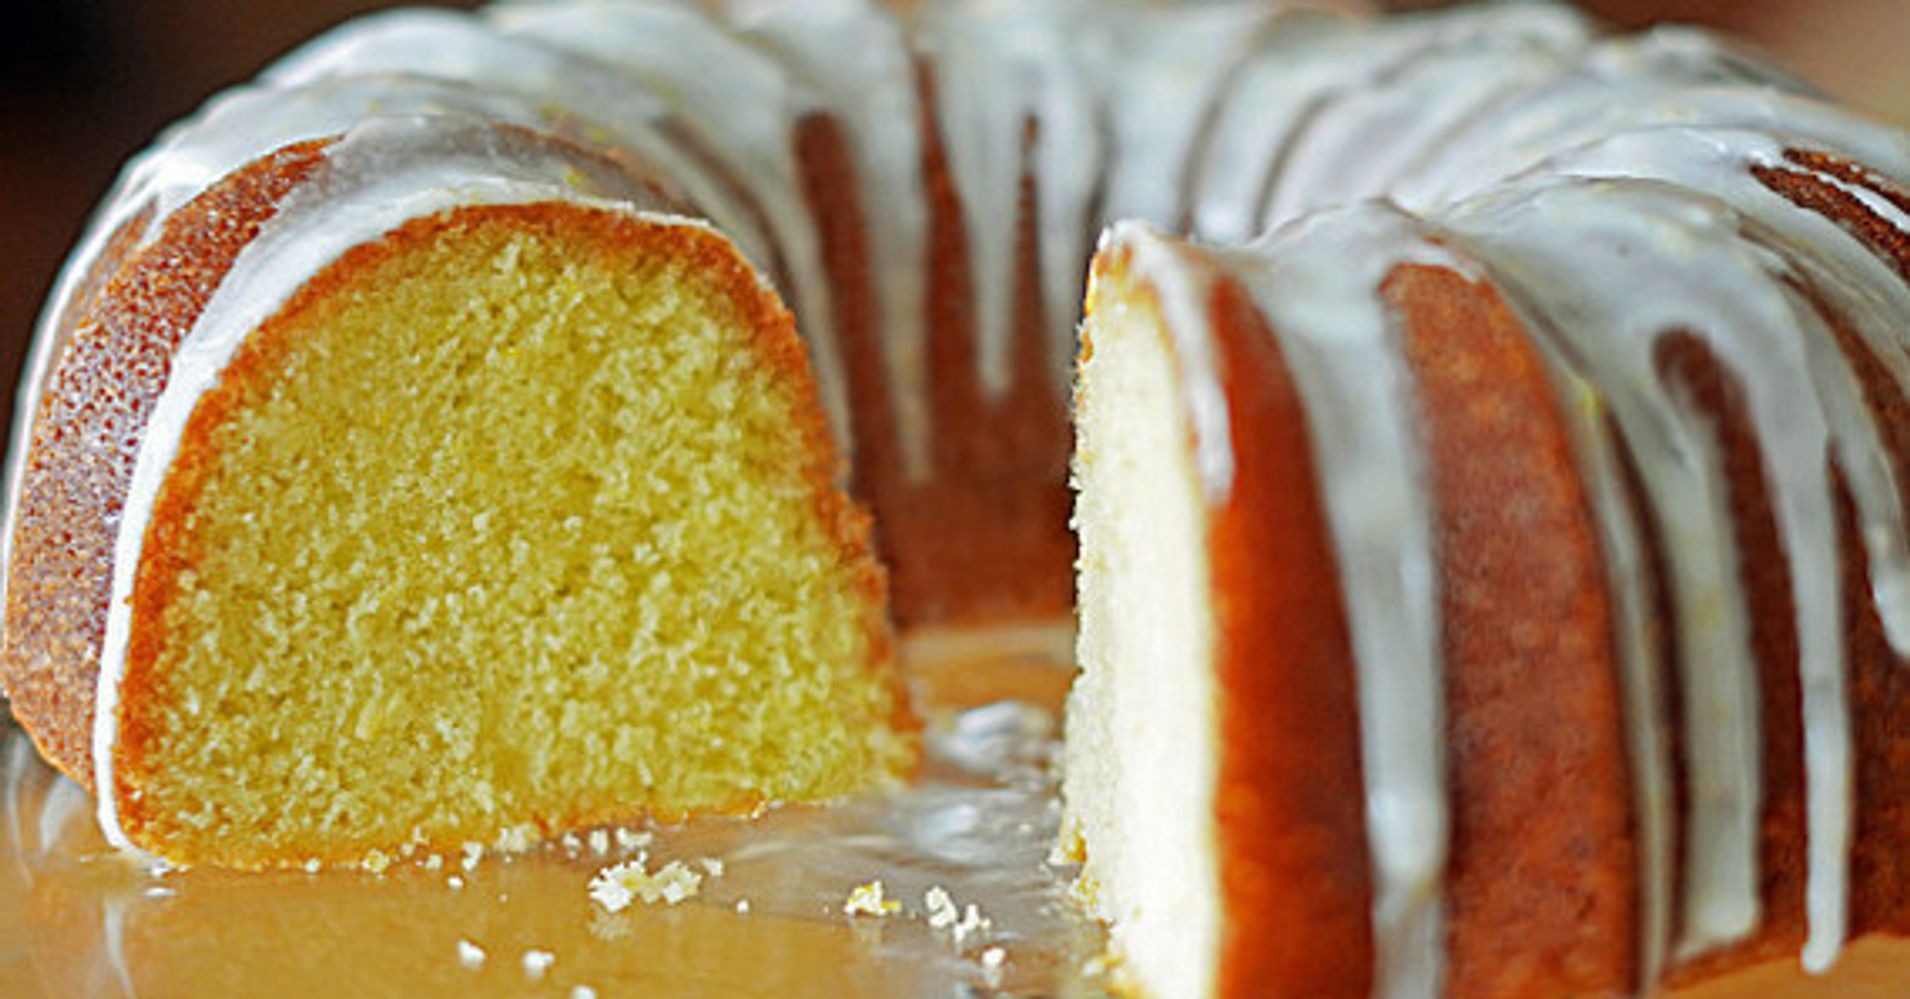 From Lemon Cake To Chocolate Cream Pie: 15 Unforgettable Easter Desserts